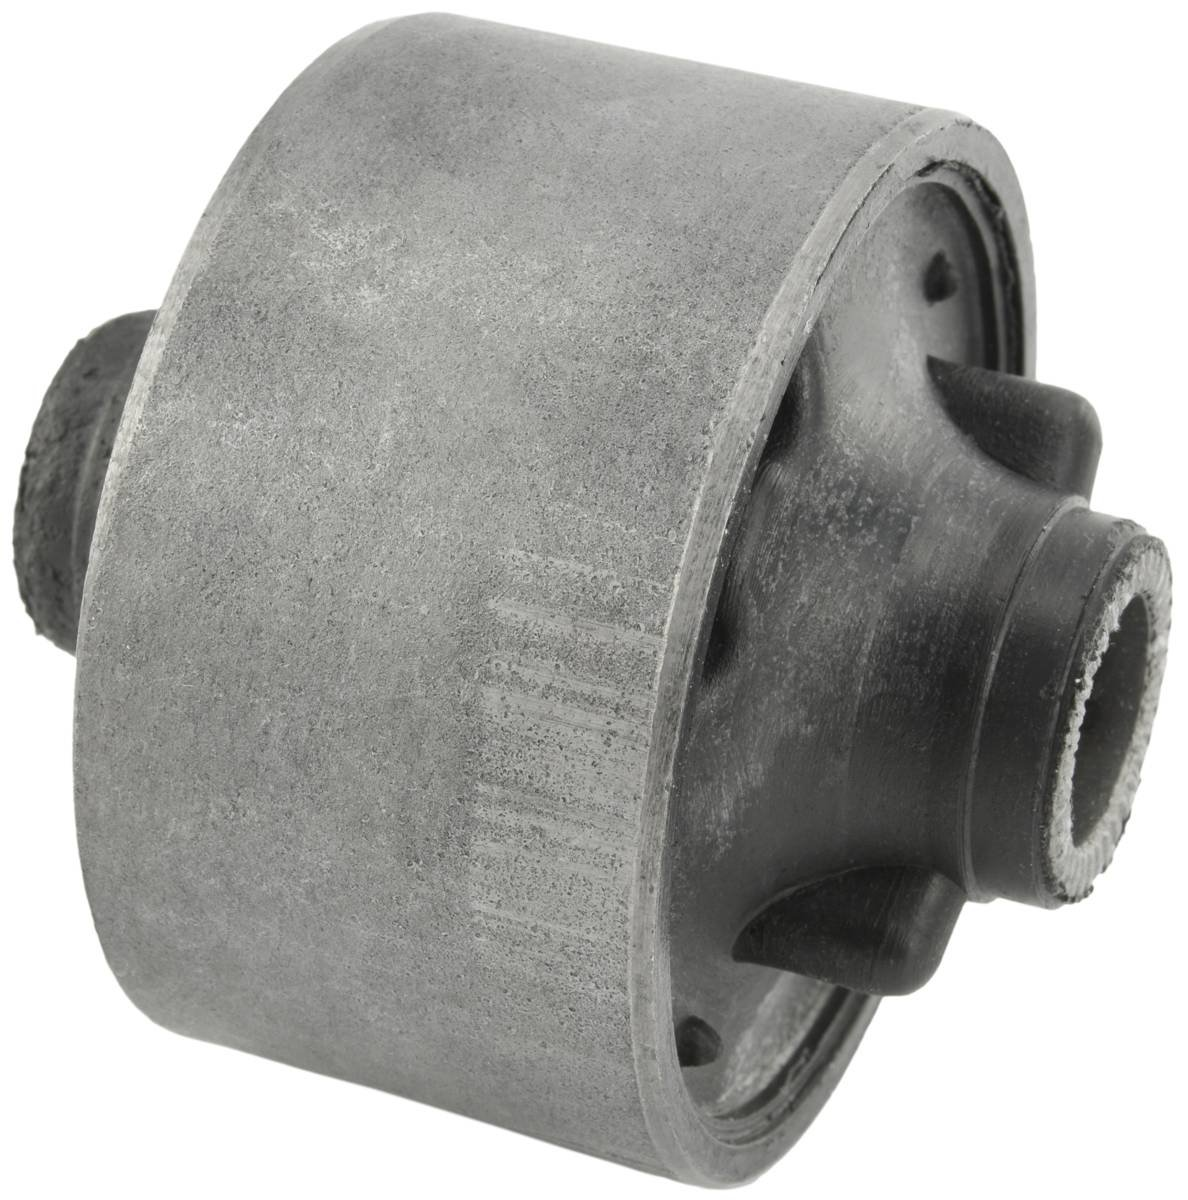 Toyota - Rear Arm Bushing Front Arm - Oem: 48069-33050 Febest